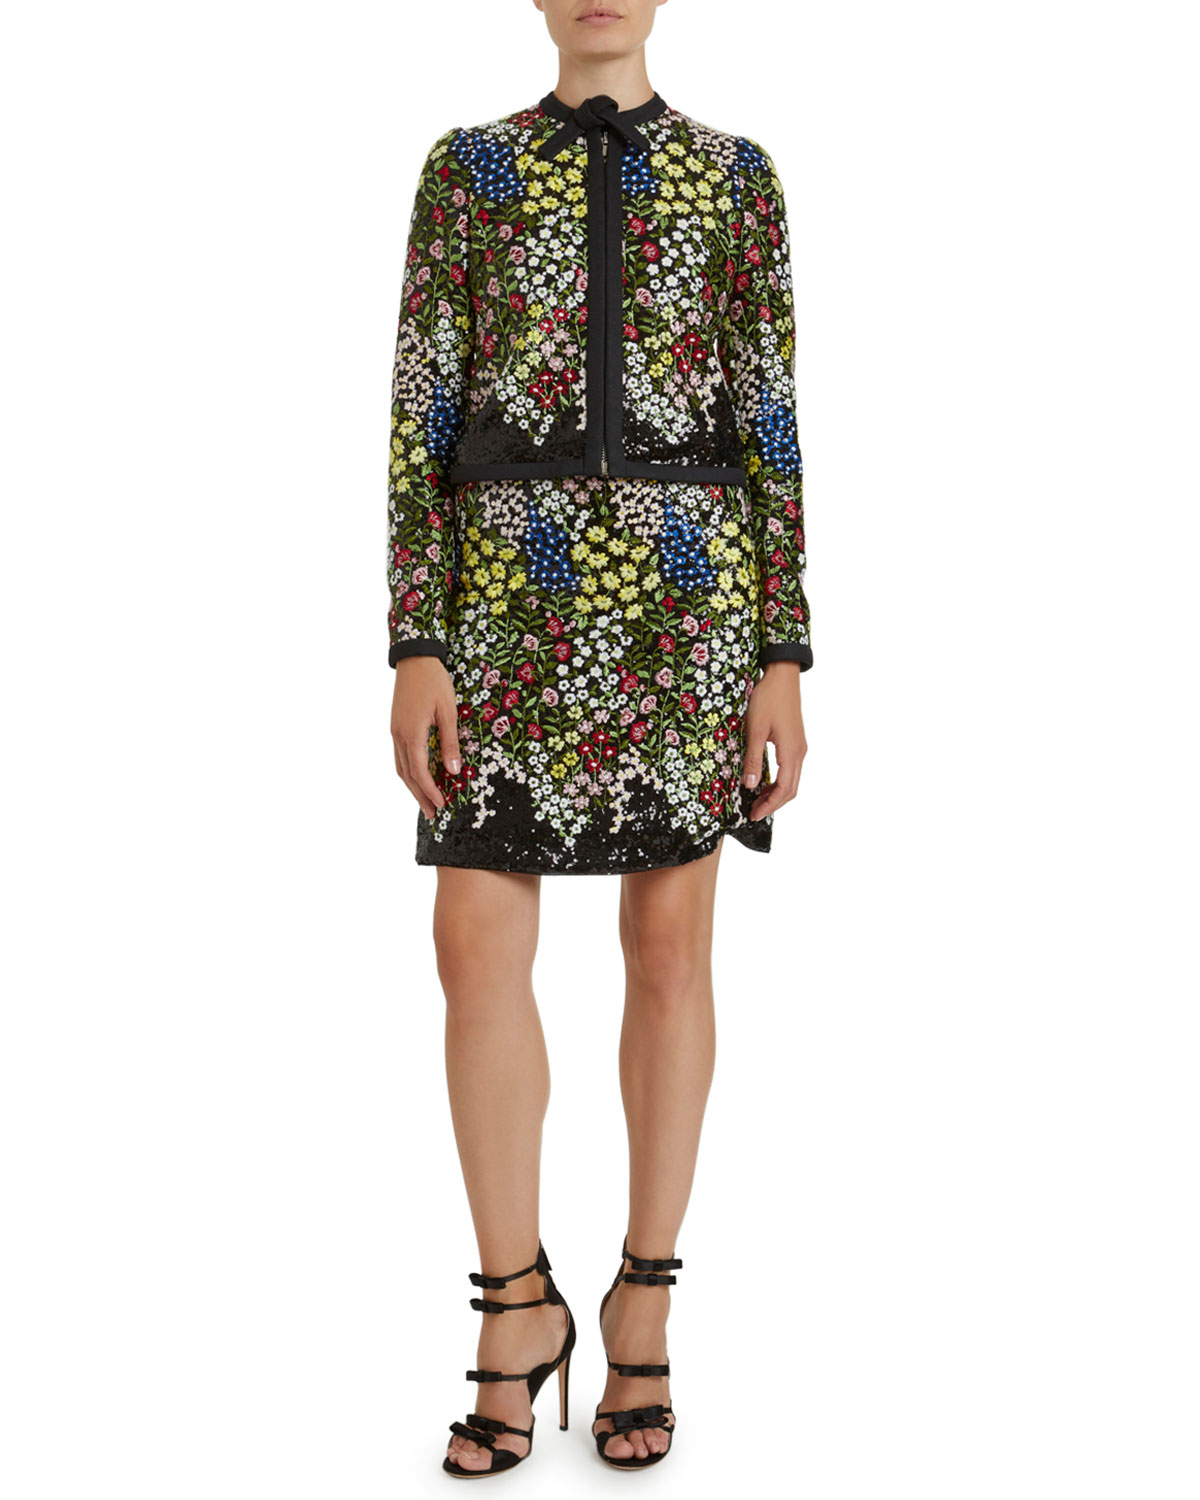 Giambattista Valli Floral Embroidered Sequined Jacket